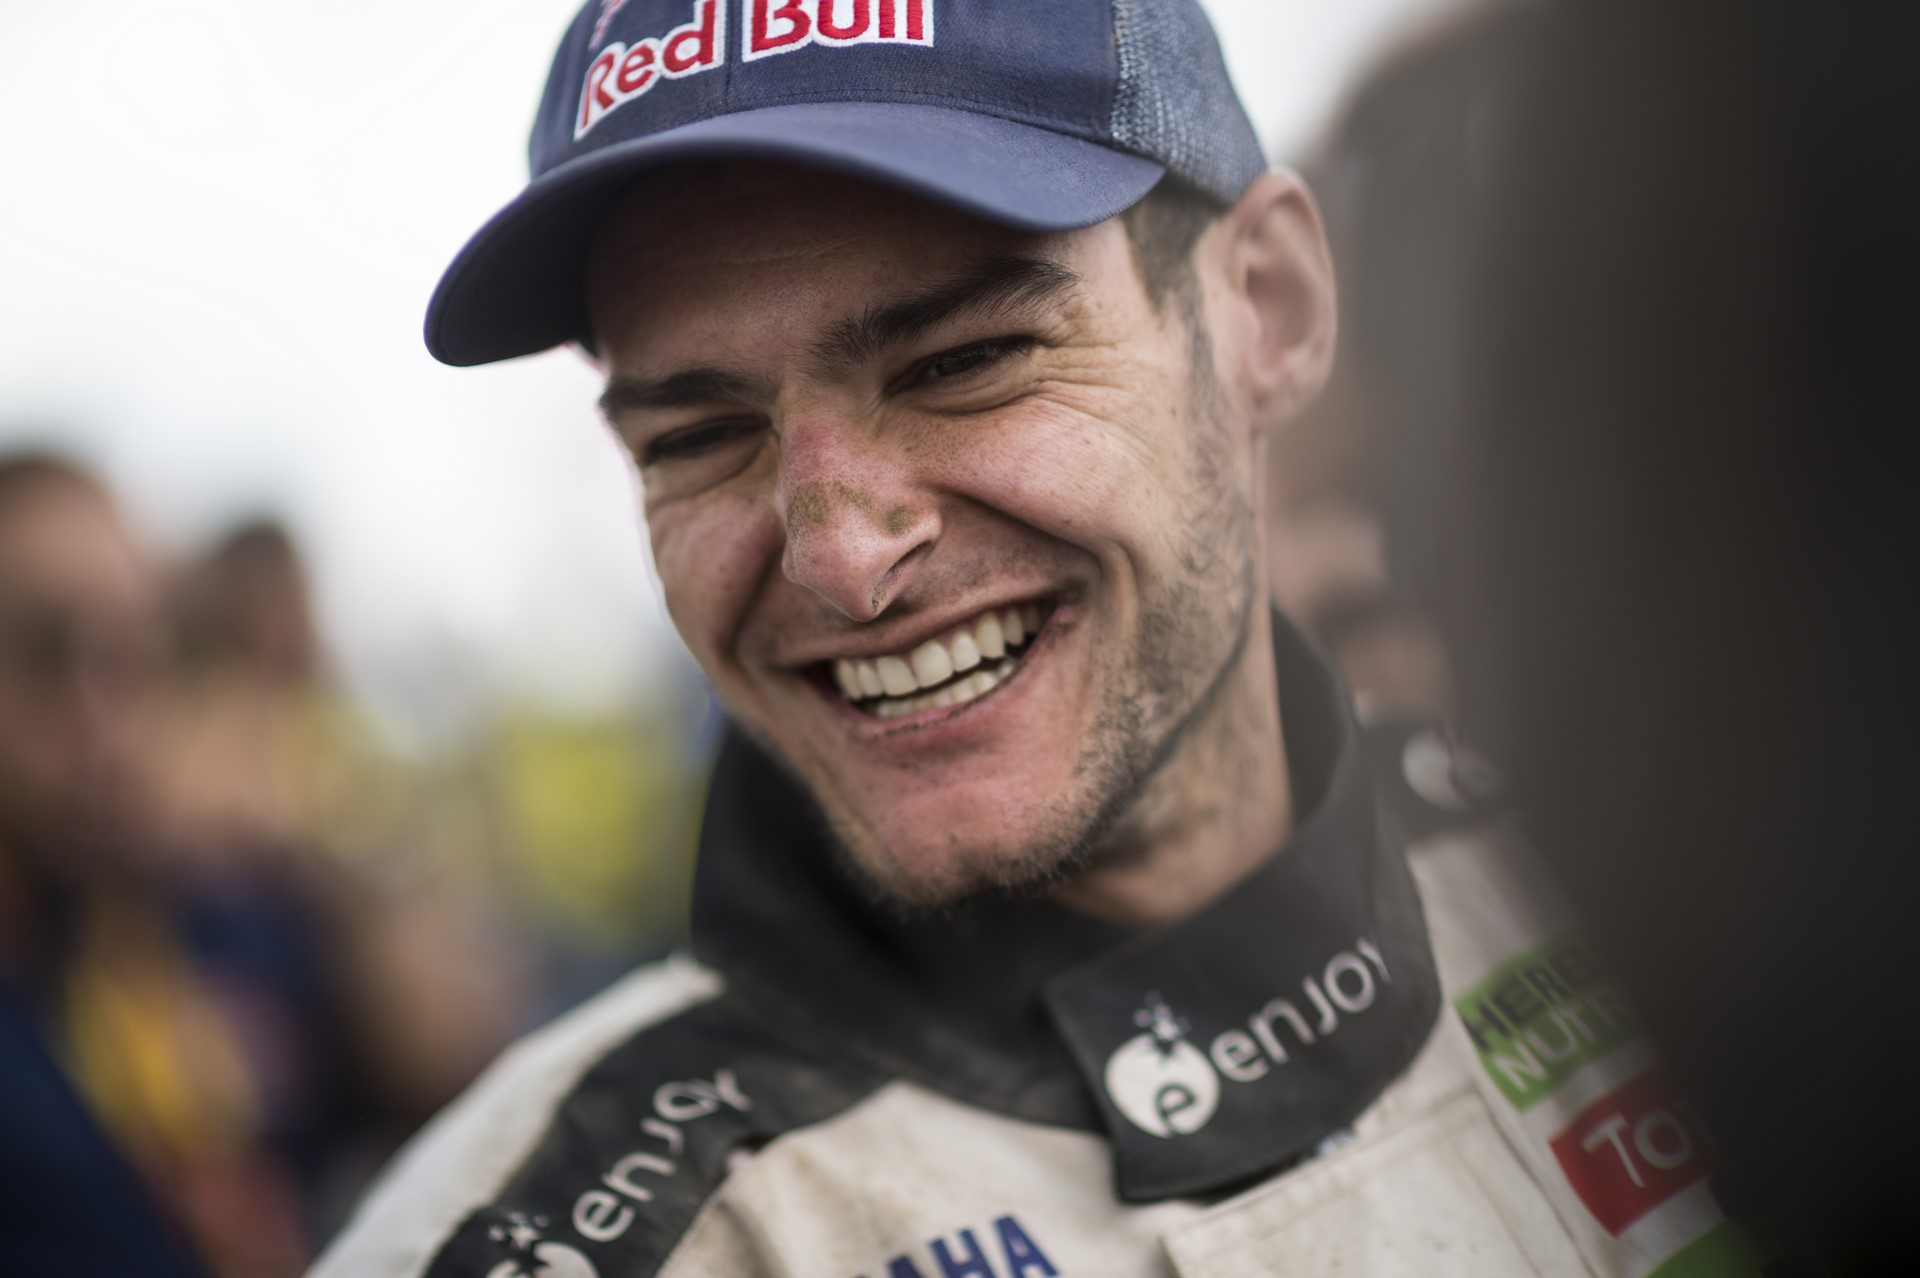 Ignacio Casale (CHL) of Casale Motorsport is seen at the finish line of Rally Dakar 2018 in Cordoba, Argentina on January 20, 2018